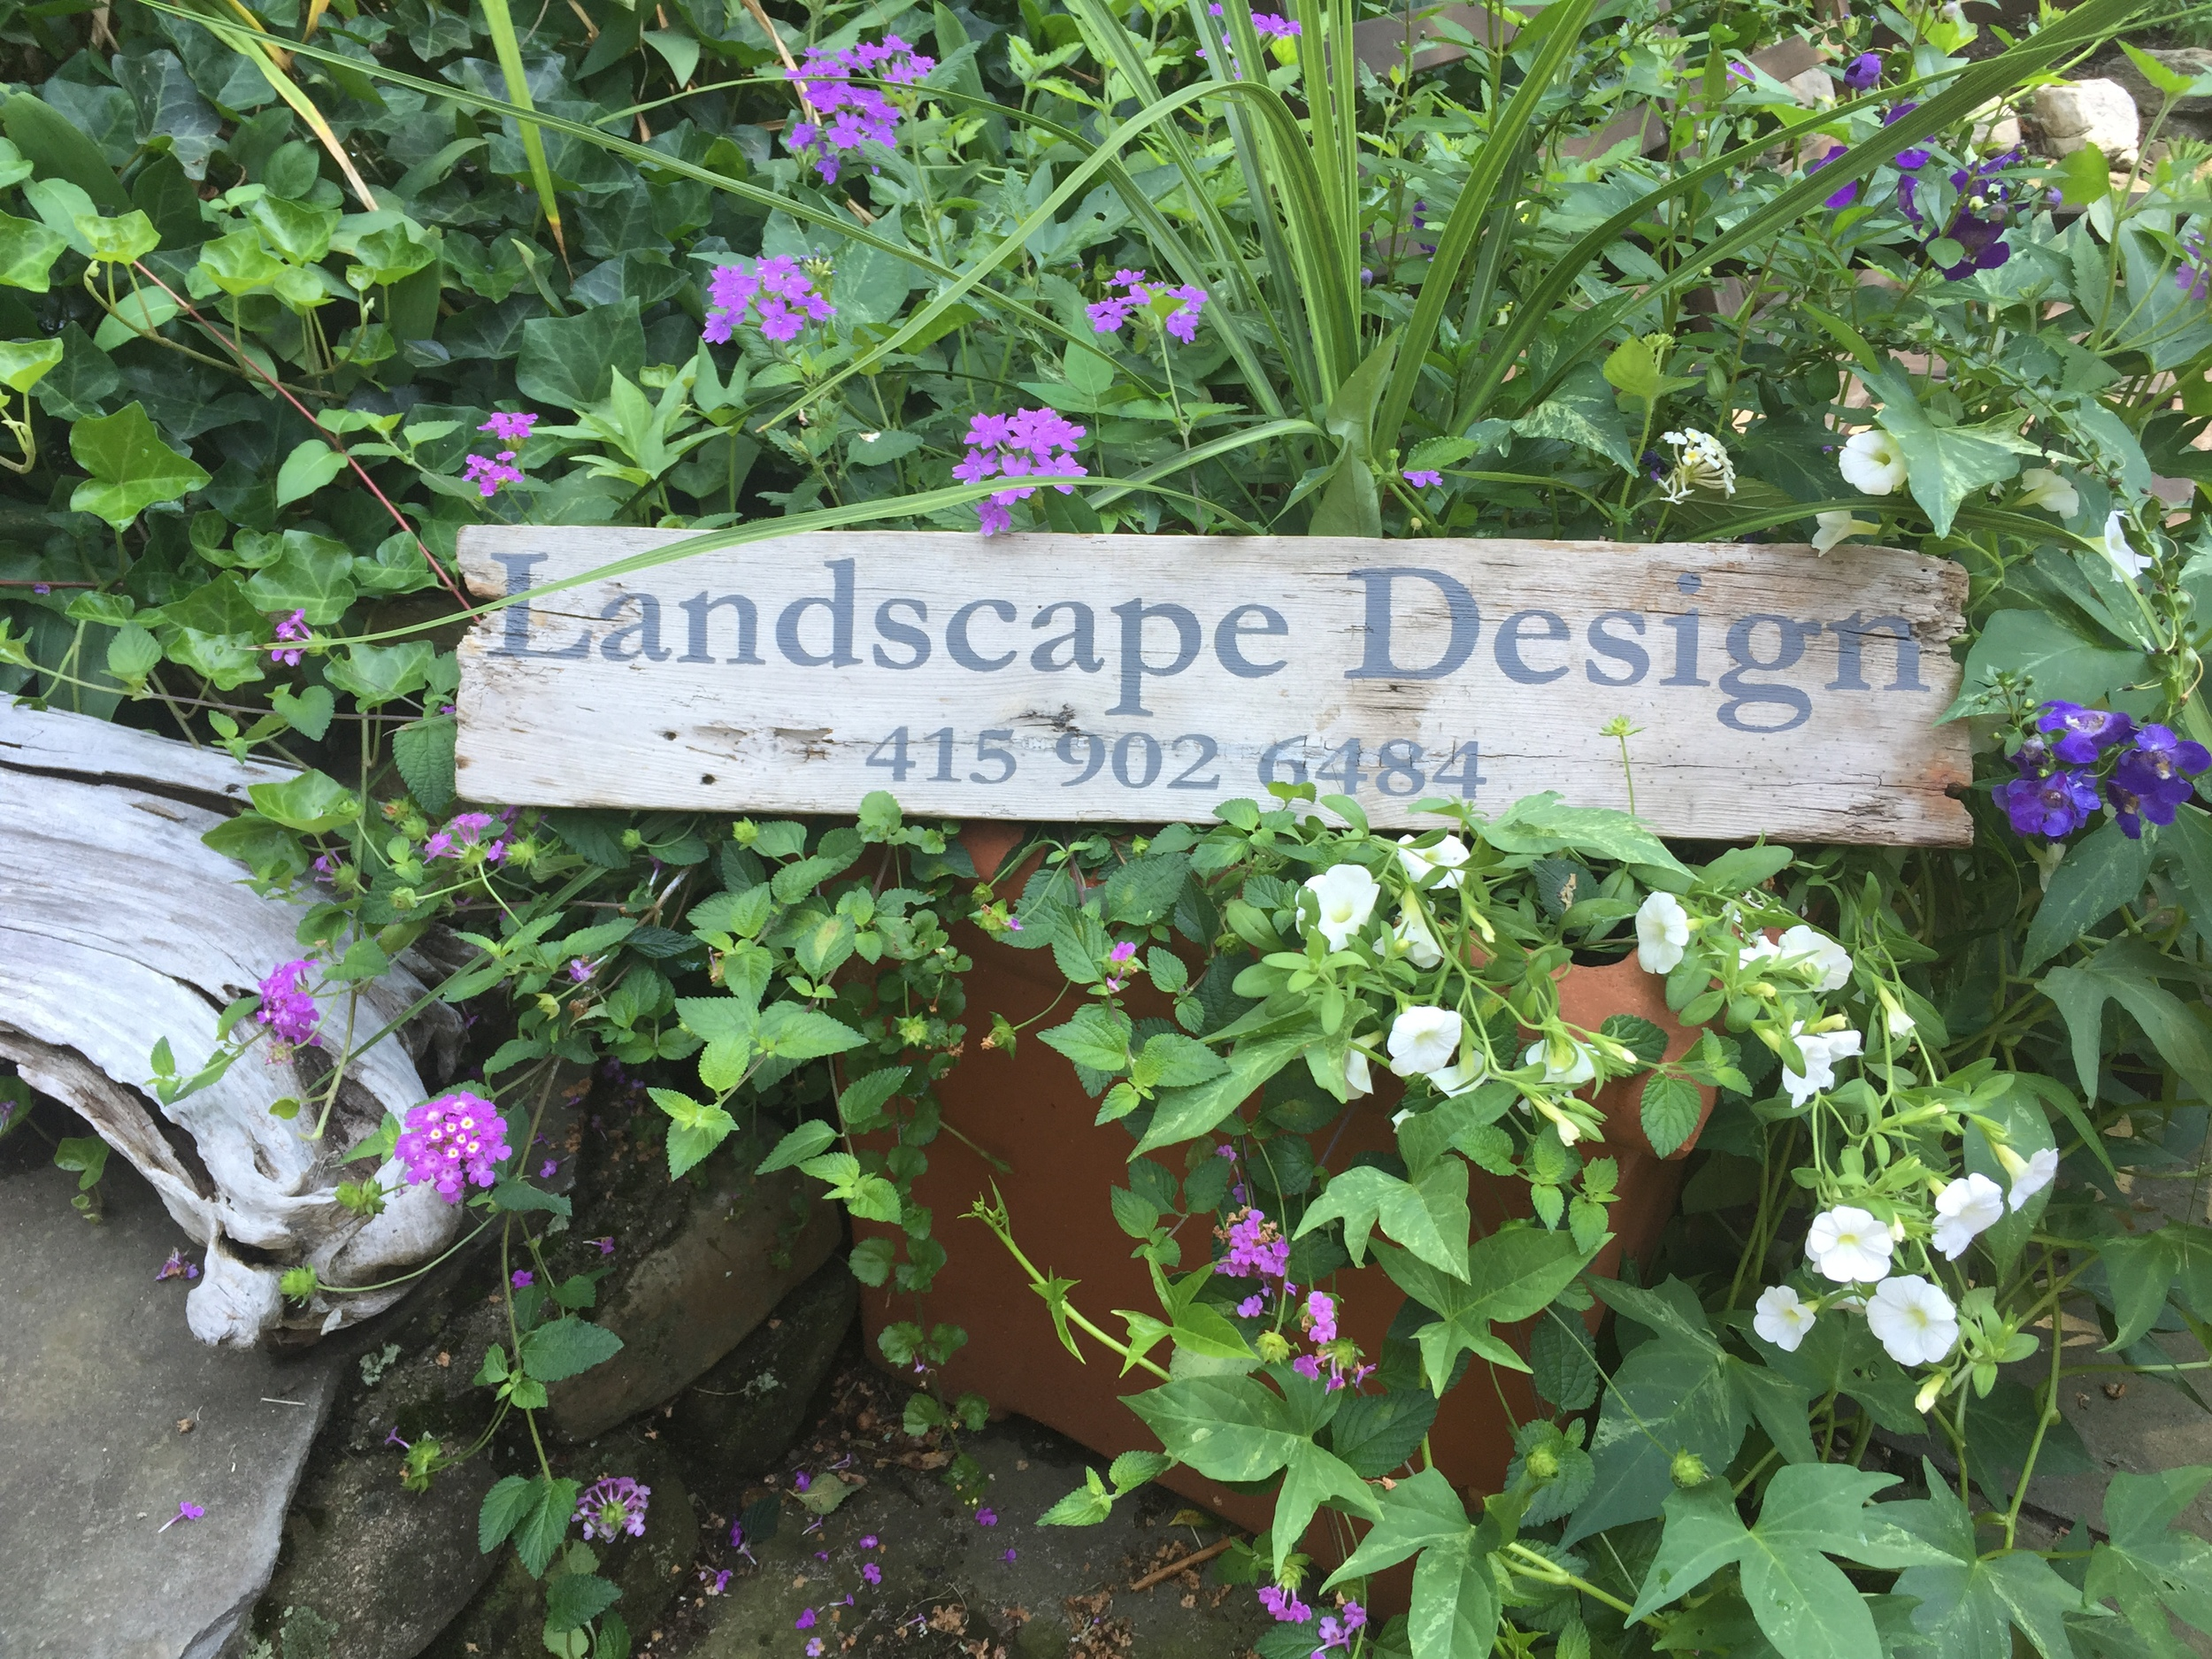 For a  California Landscape design company...